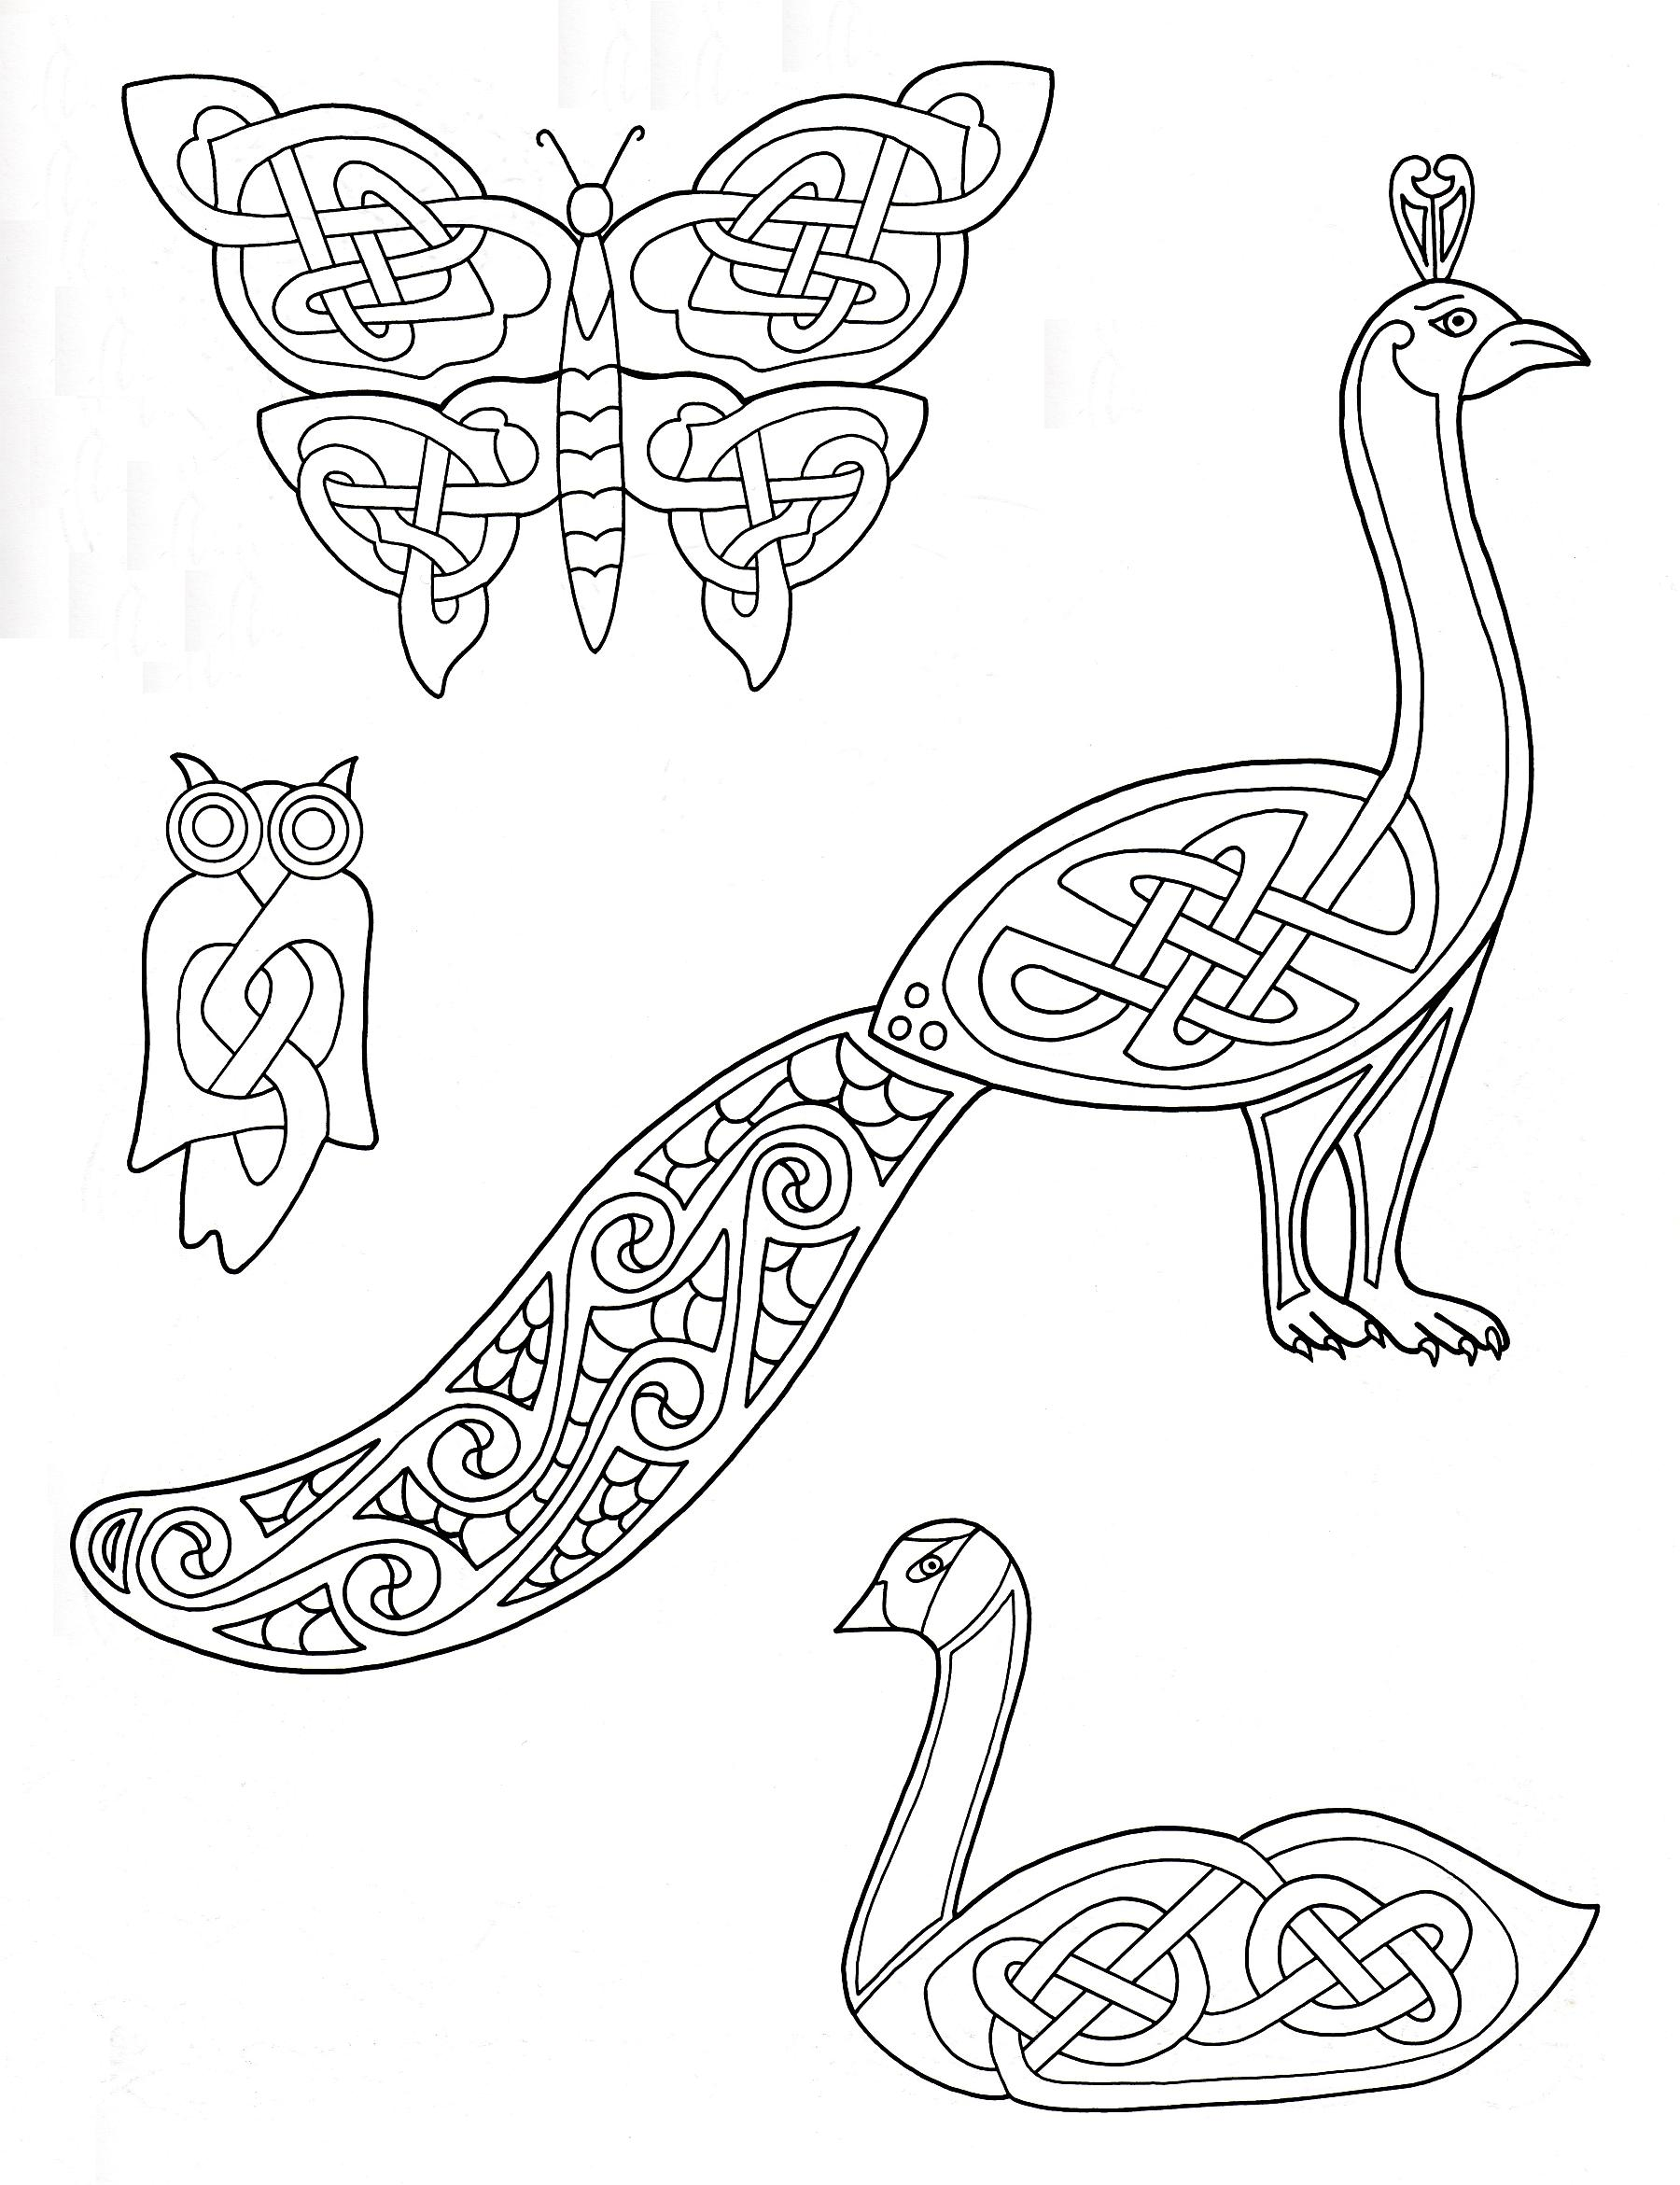 4 animals inspired by Celtic Art